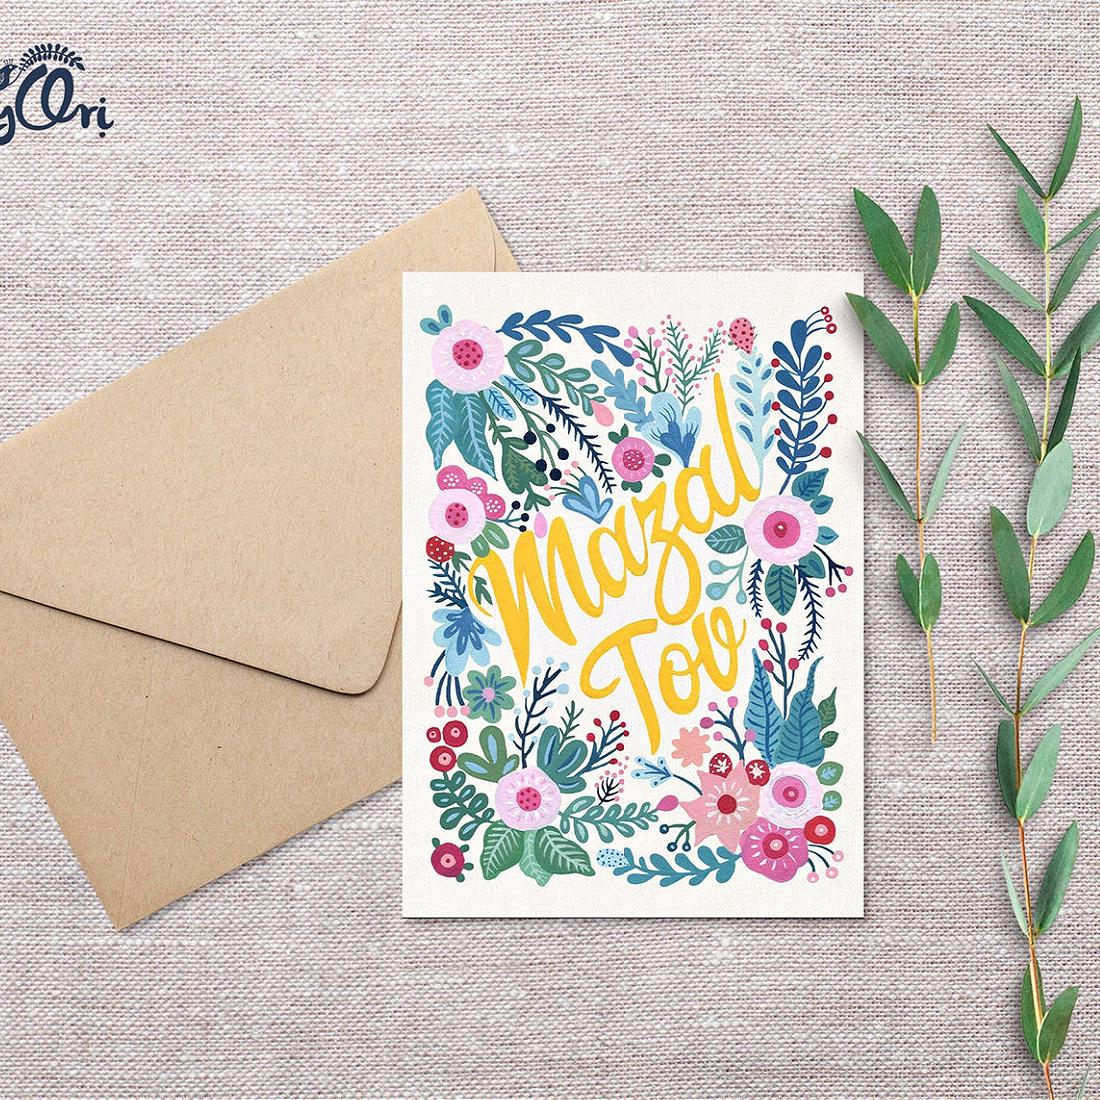 Mazal Tov White BG Greeting Card